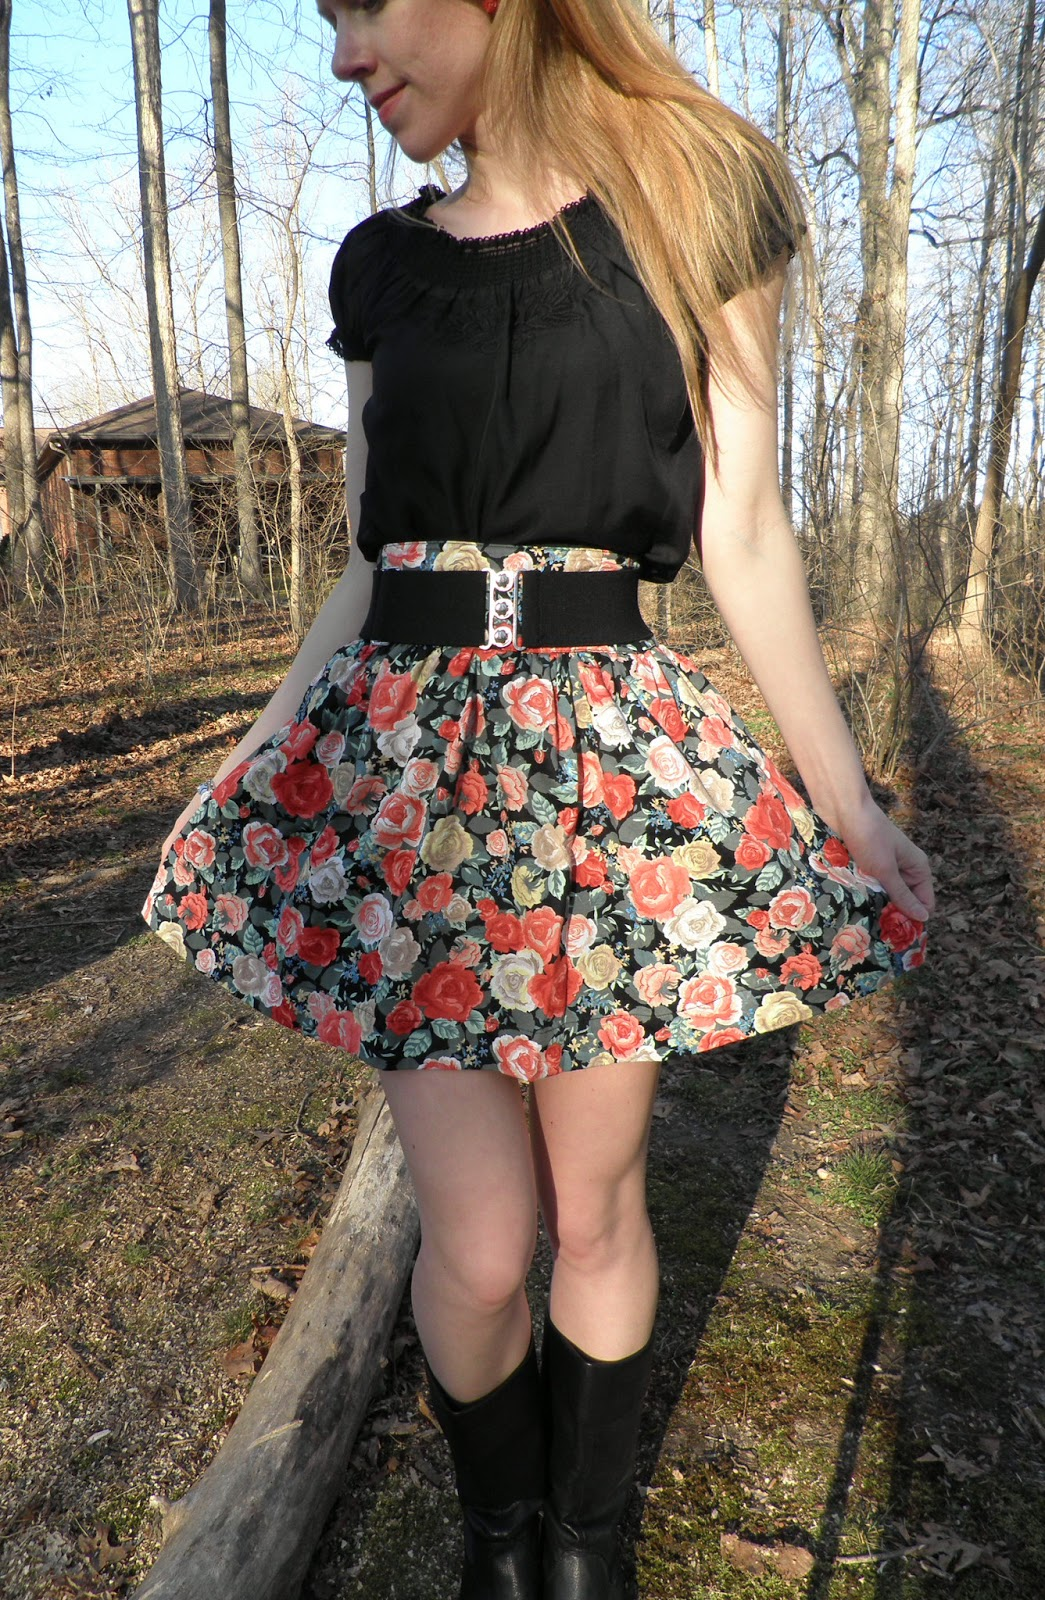 High Waisted Skirt Outfits Tumblr 2014-2015